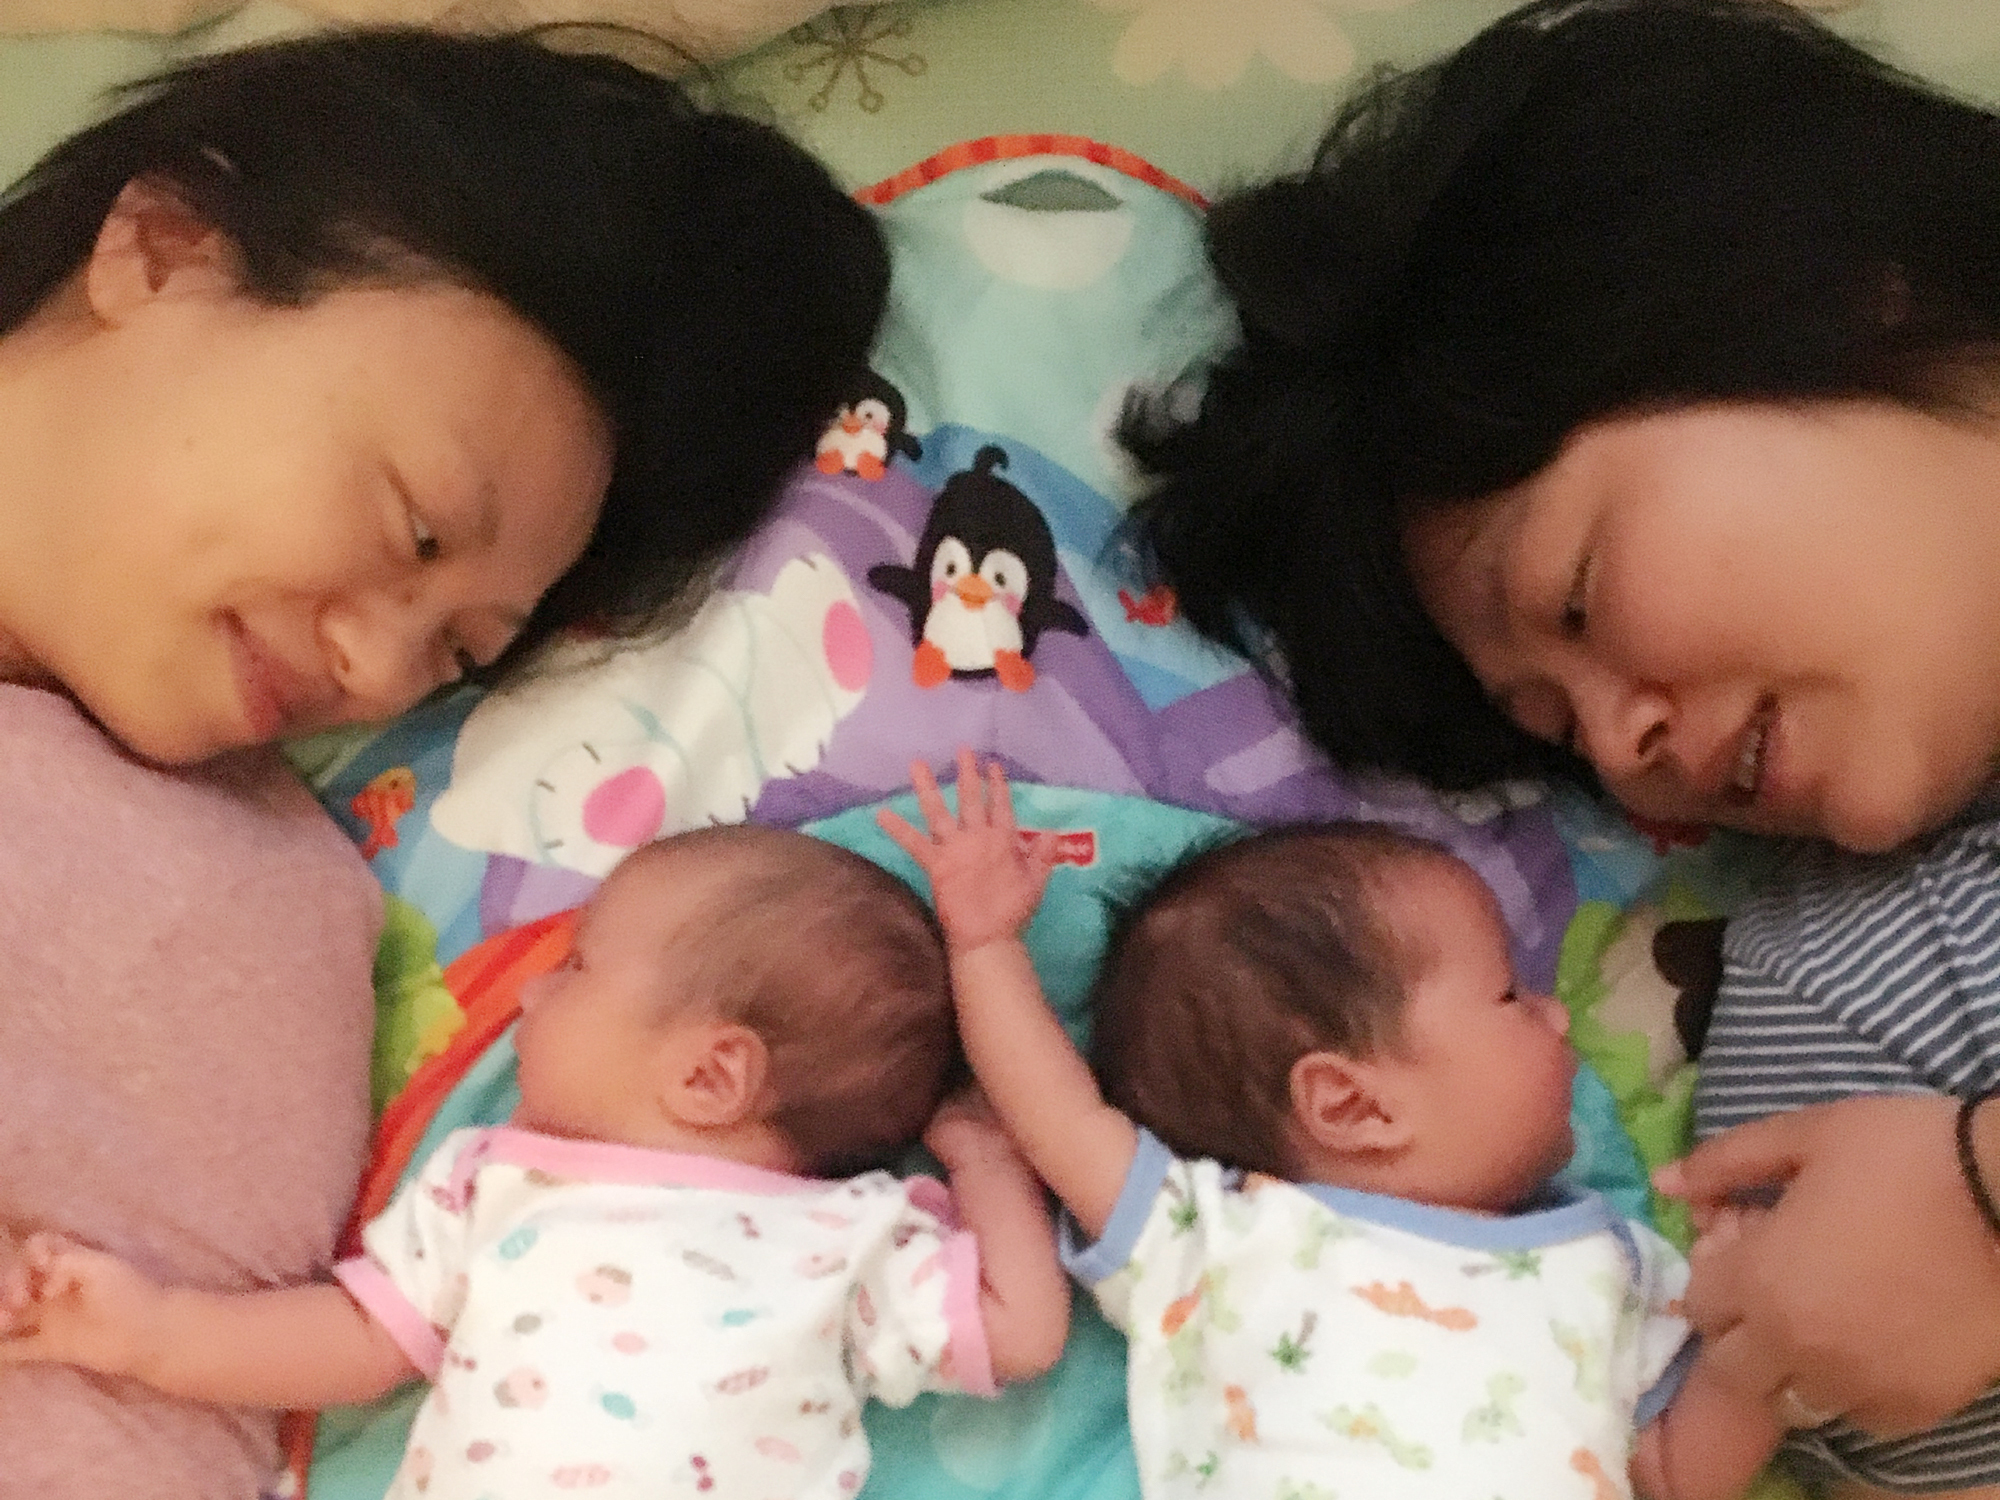 Newborn Babies Passport Undaunted By China 39;s Rule Book Lesbian Couple Welcomes